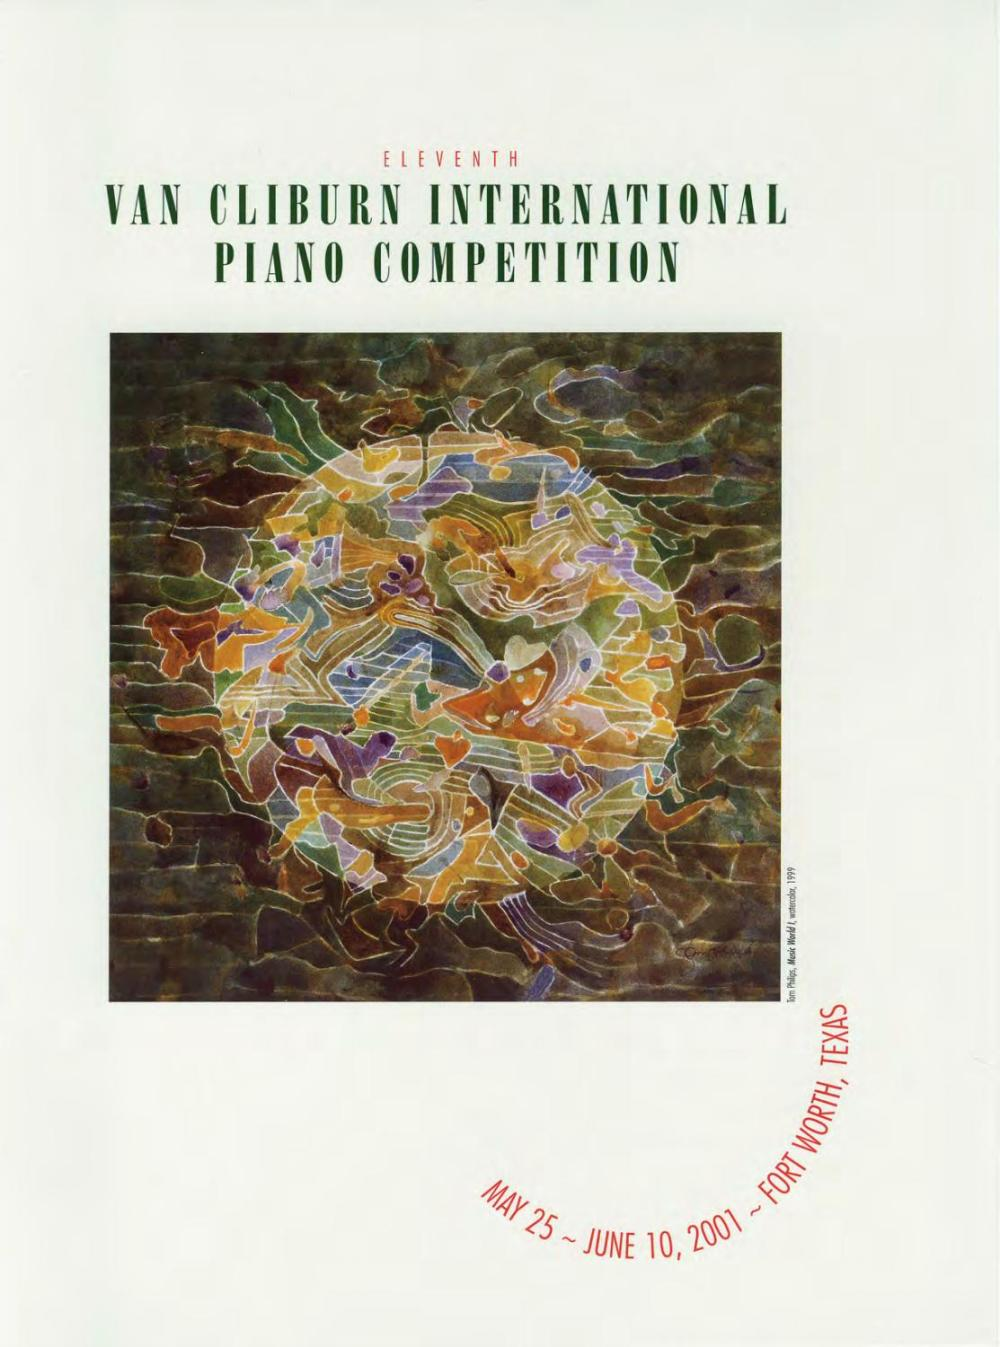 medium resolution of eleventh van cliburn international piano competition program book 2001 by the cliburn issuu